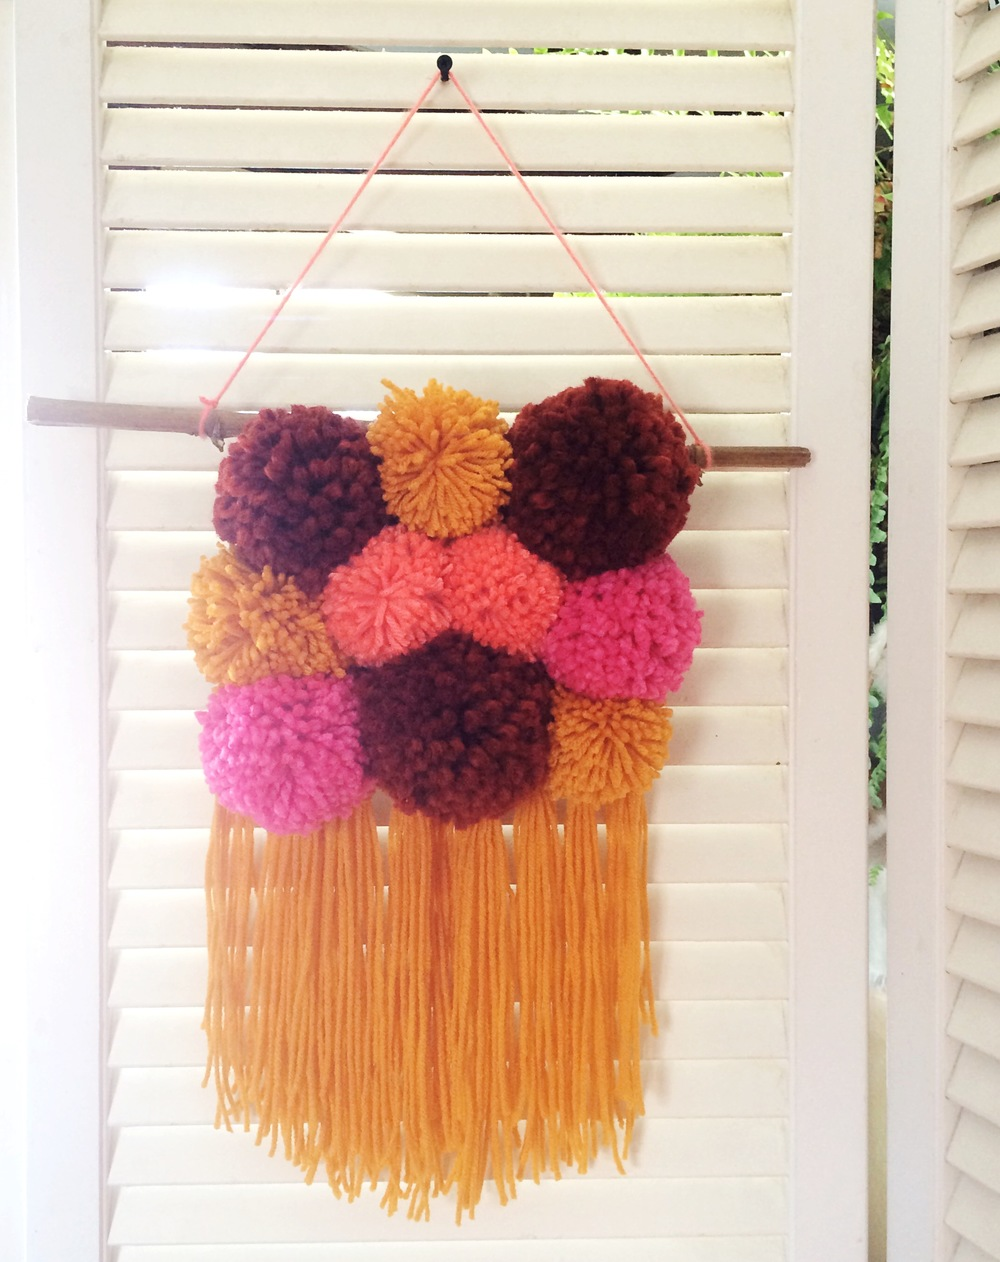 Vintage inspired pom-pom weaving.